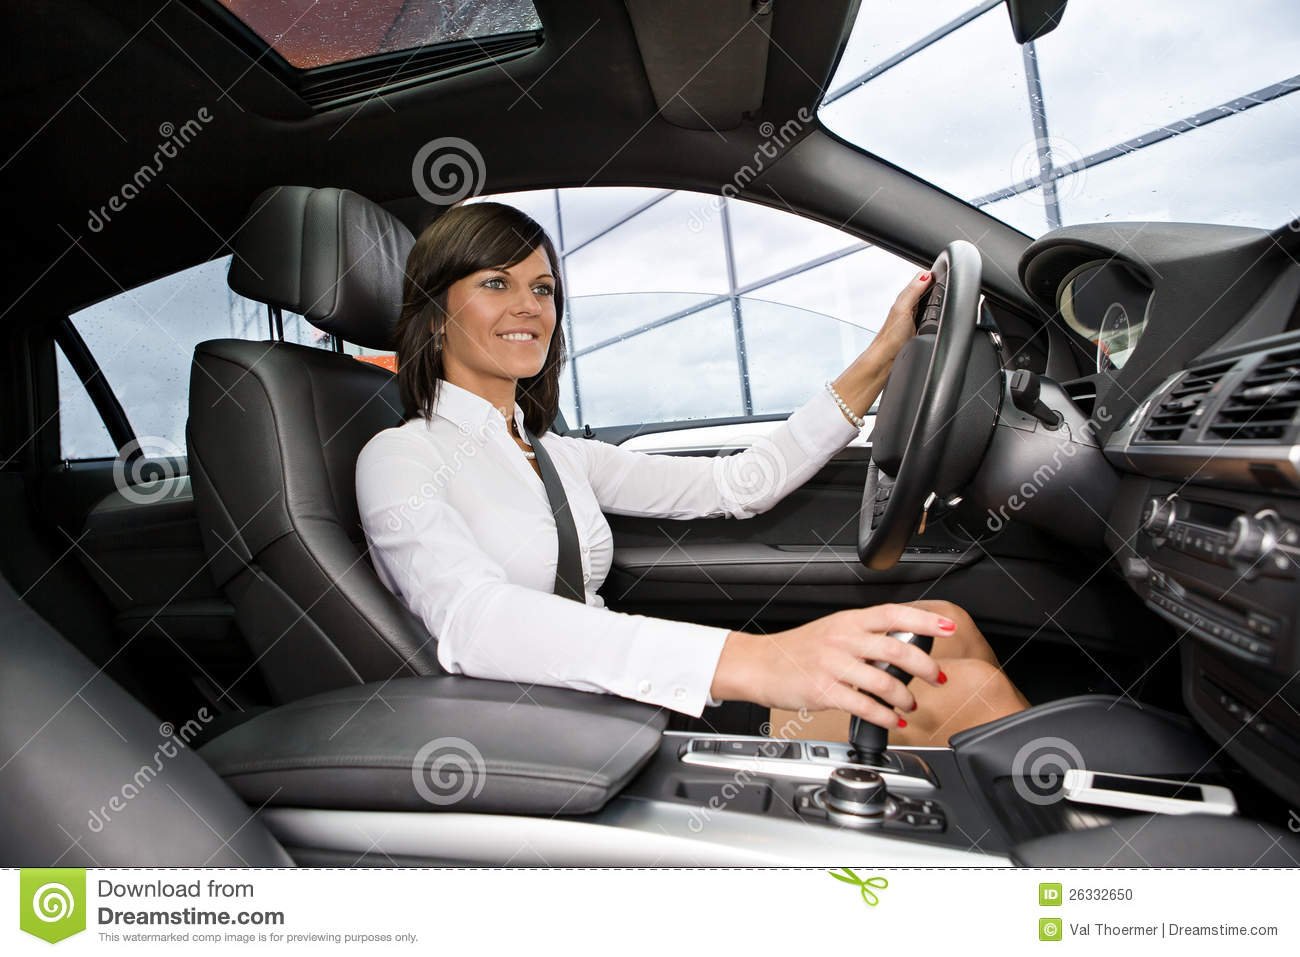 Drive Time Payment >> Driving Girl Stock Photo - Image: 26332650